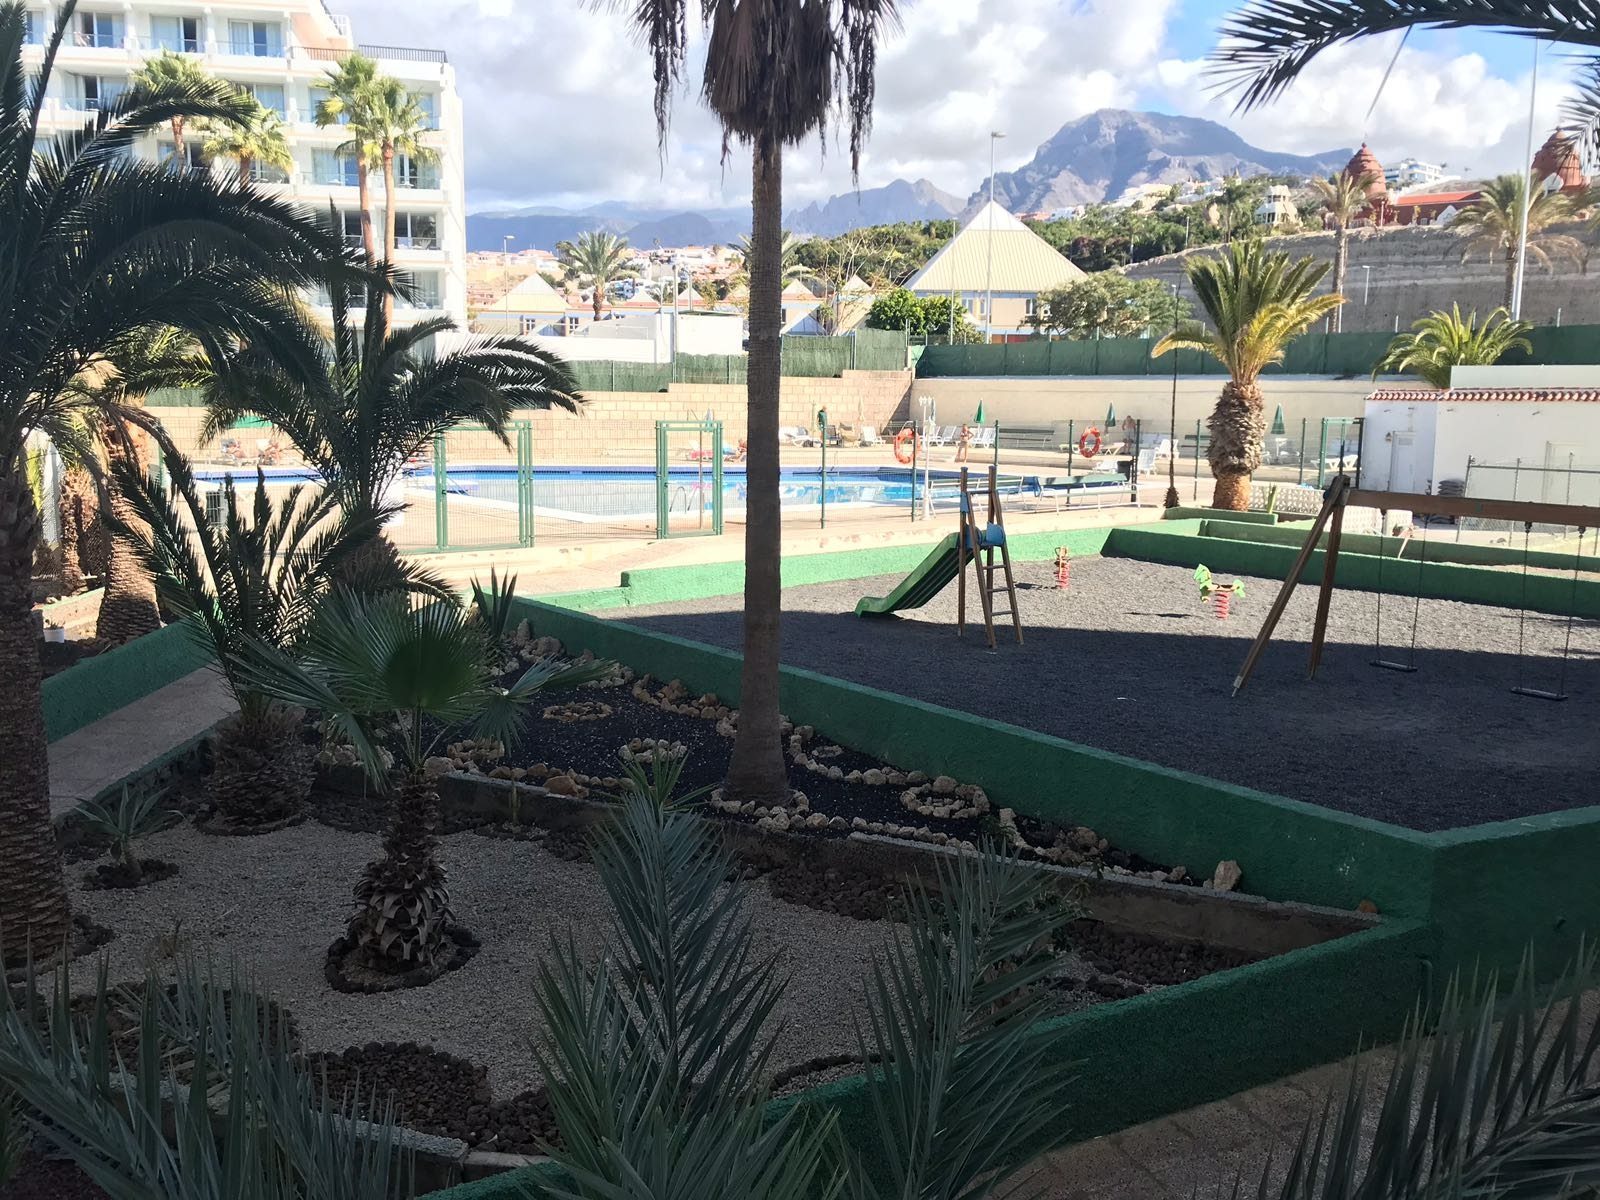 Properties for Sale in Tenerife, Canary Islands, Spain | SylkWayStar Real Estate. 1 Bedroom apartment Los Agaves. Image-22269